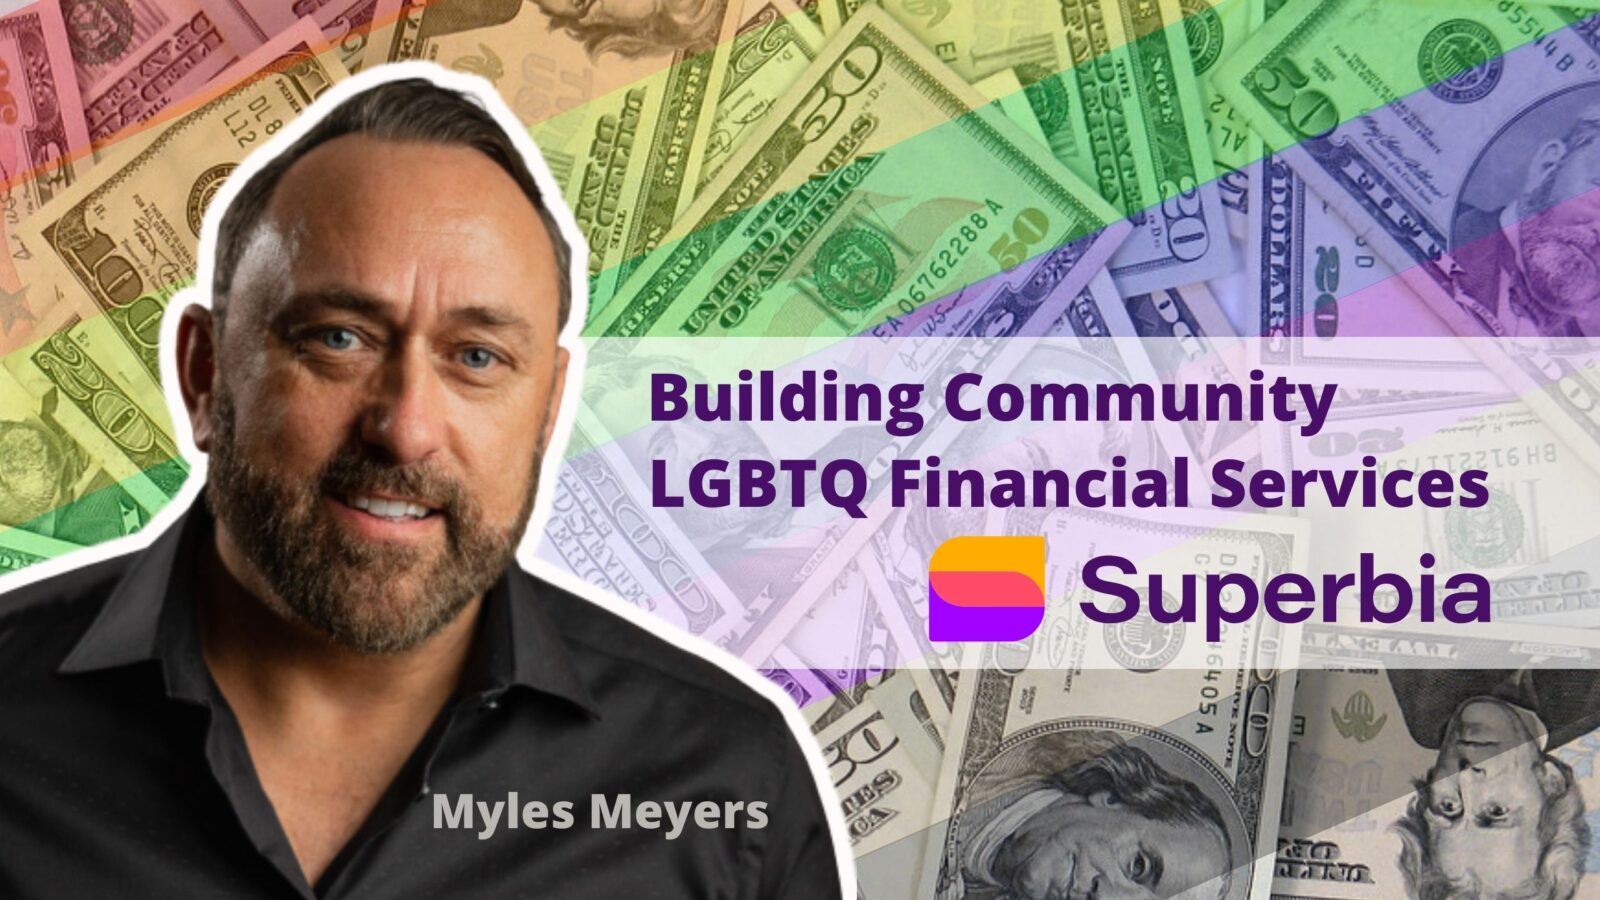 Superbia Services Myles Myers LGBTQ Credit Union Gay Money Entrepreneur lgbt banking personal business (1)